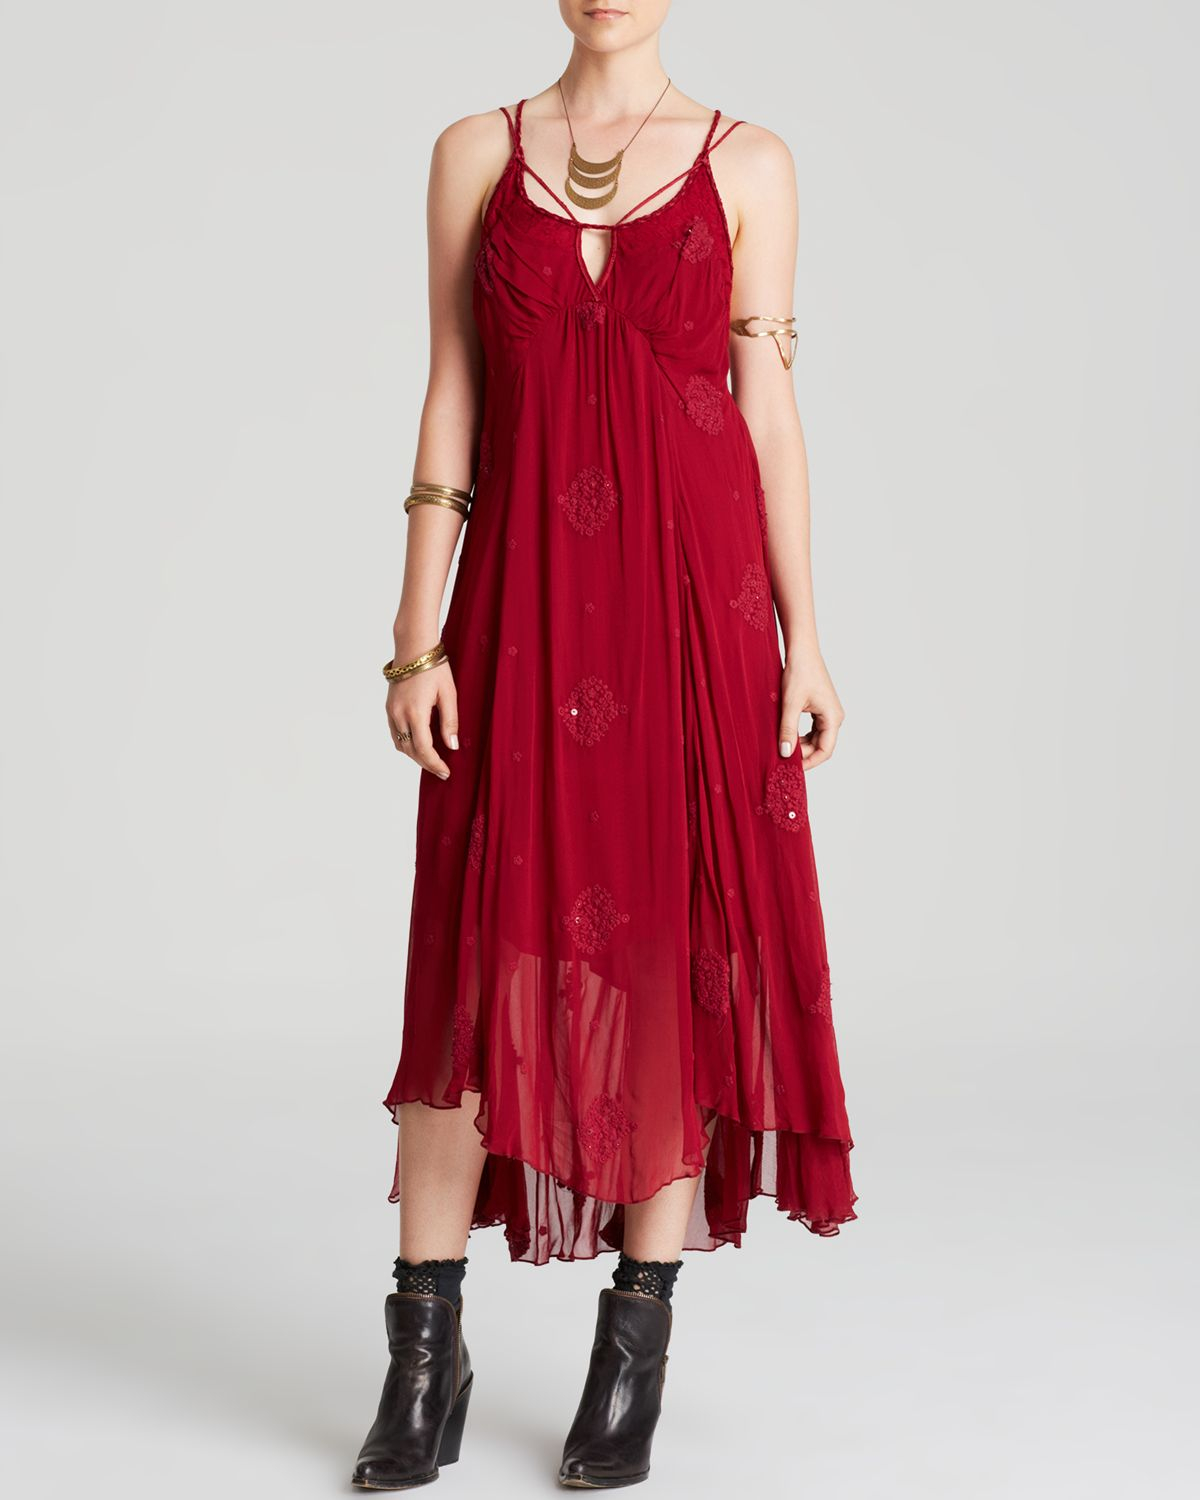 Free people Dress - Blue Moon Draped in Red - Lyst